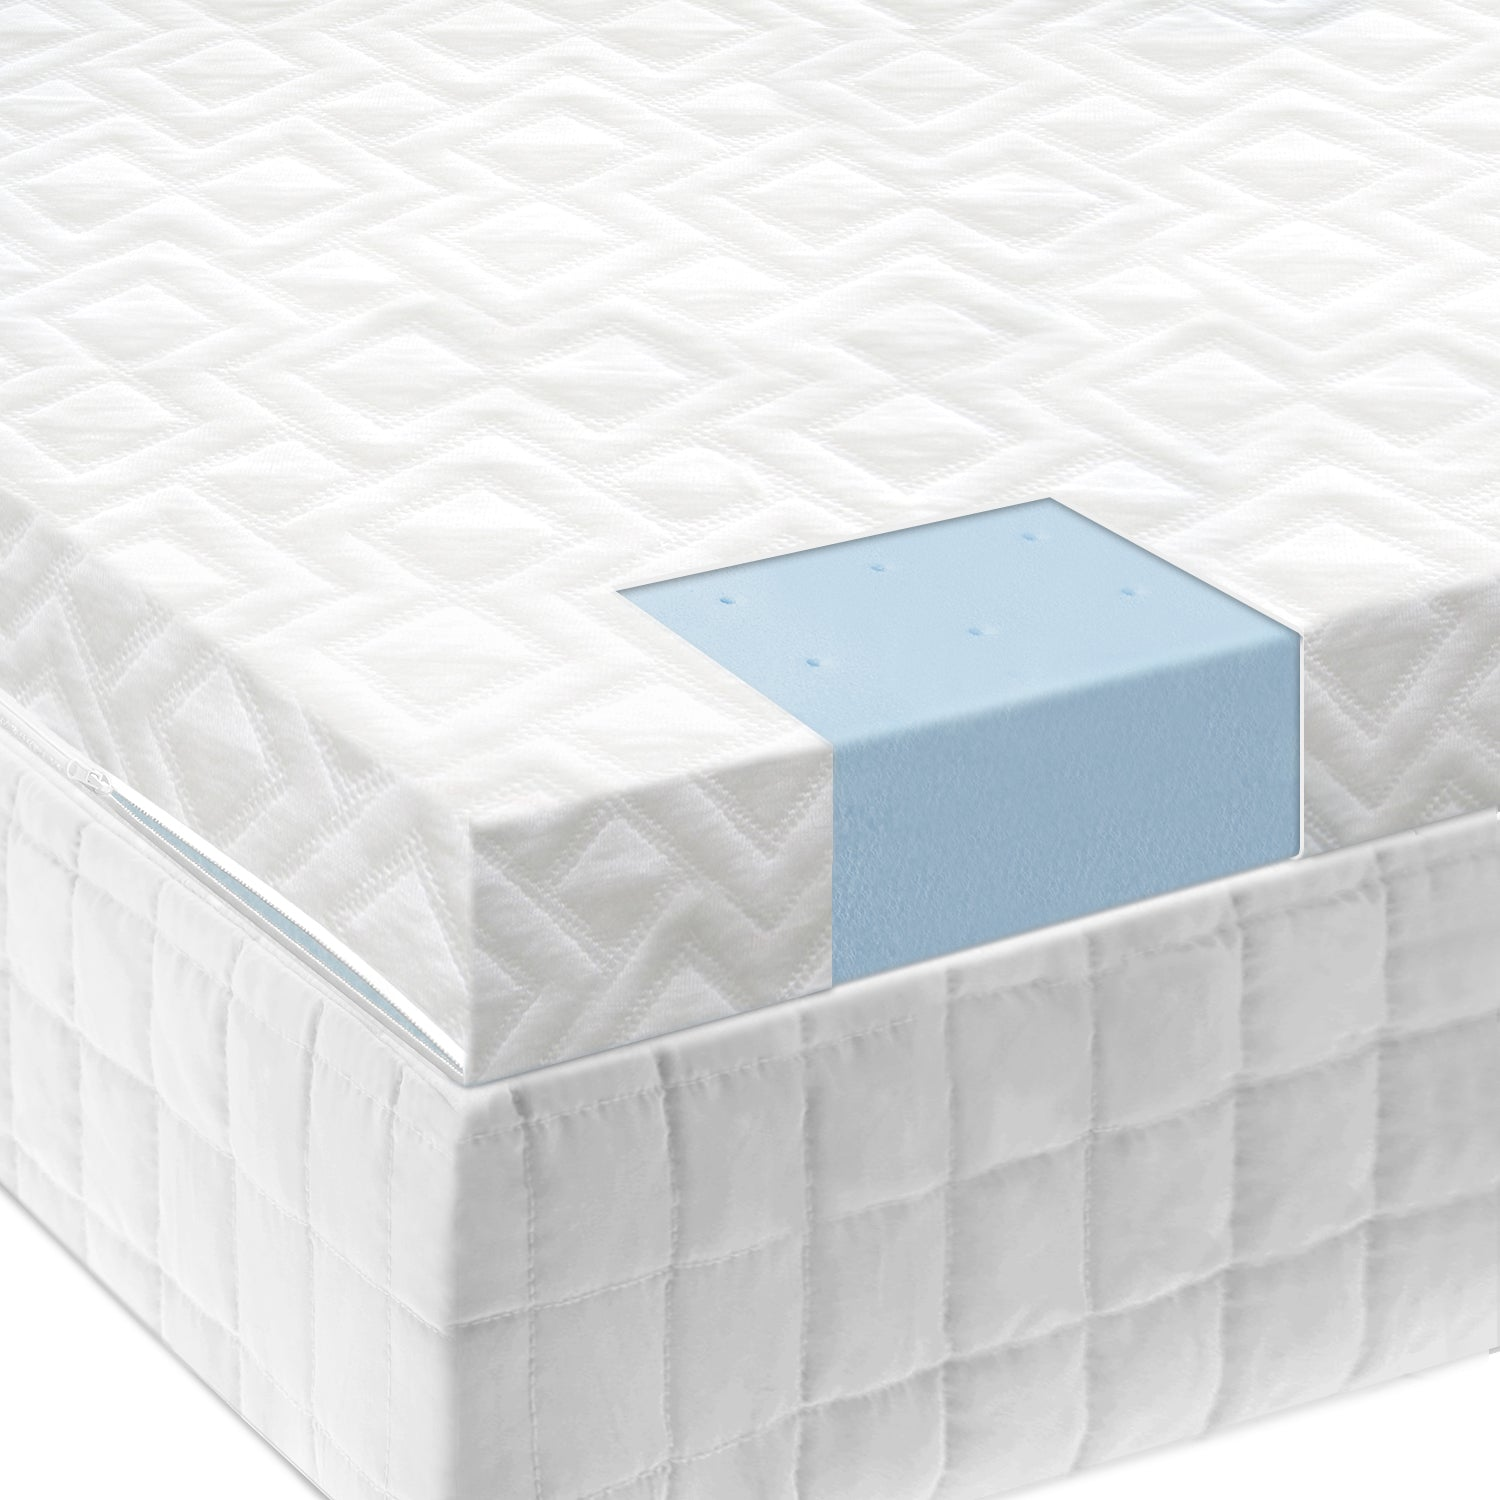 Malouf Isolus 2.5 Inch Gel Memory Foam Mattress Topper